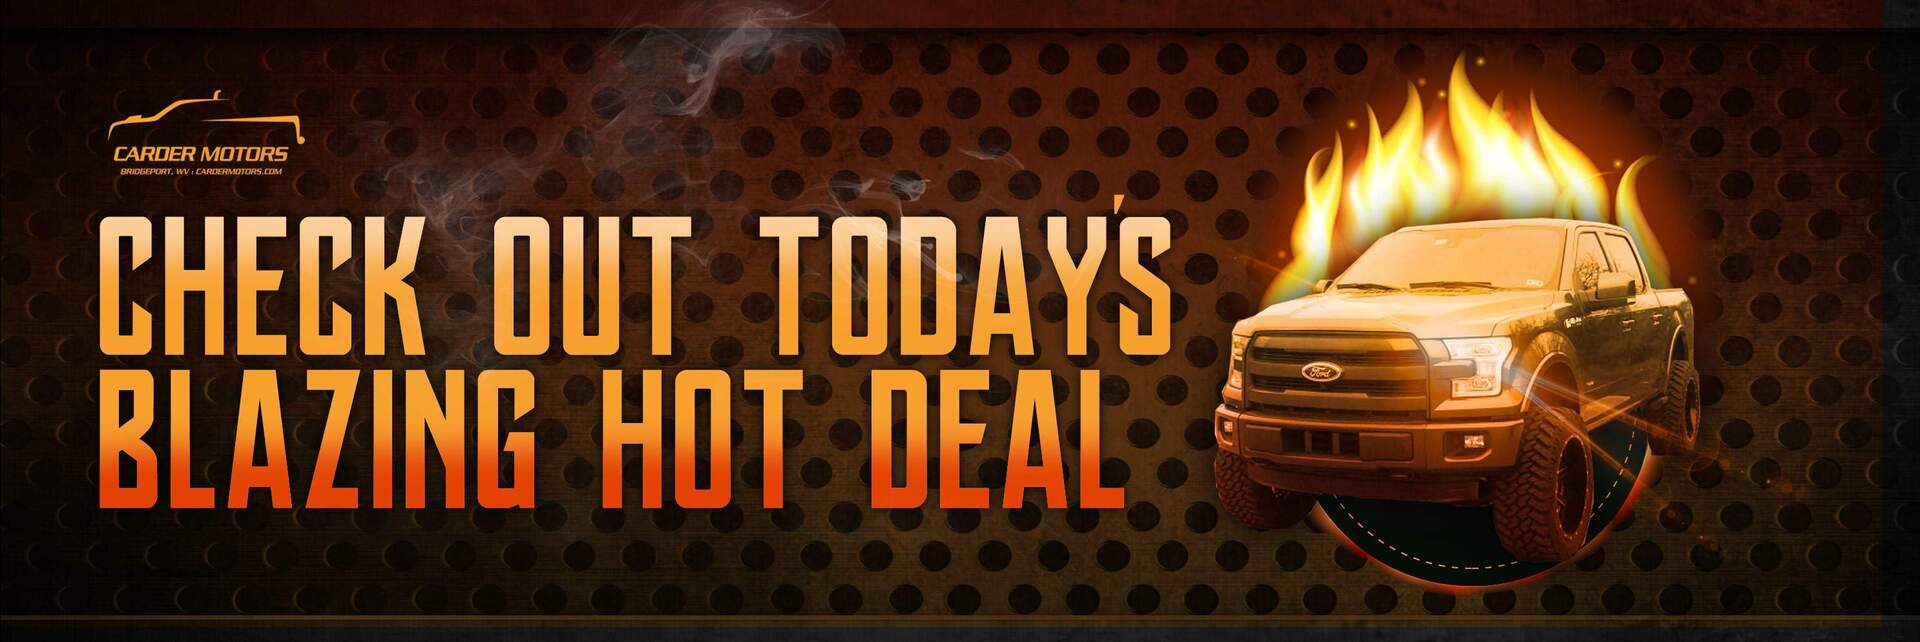 Blazing Hot Deal